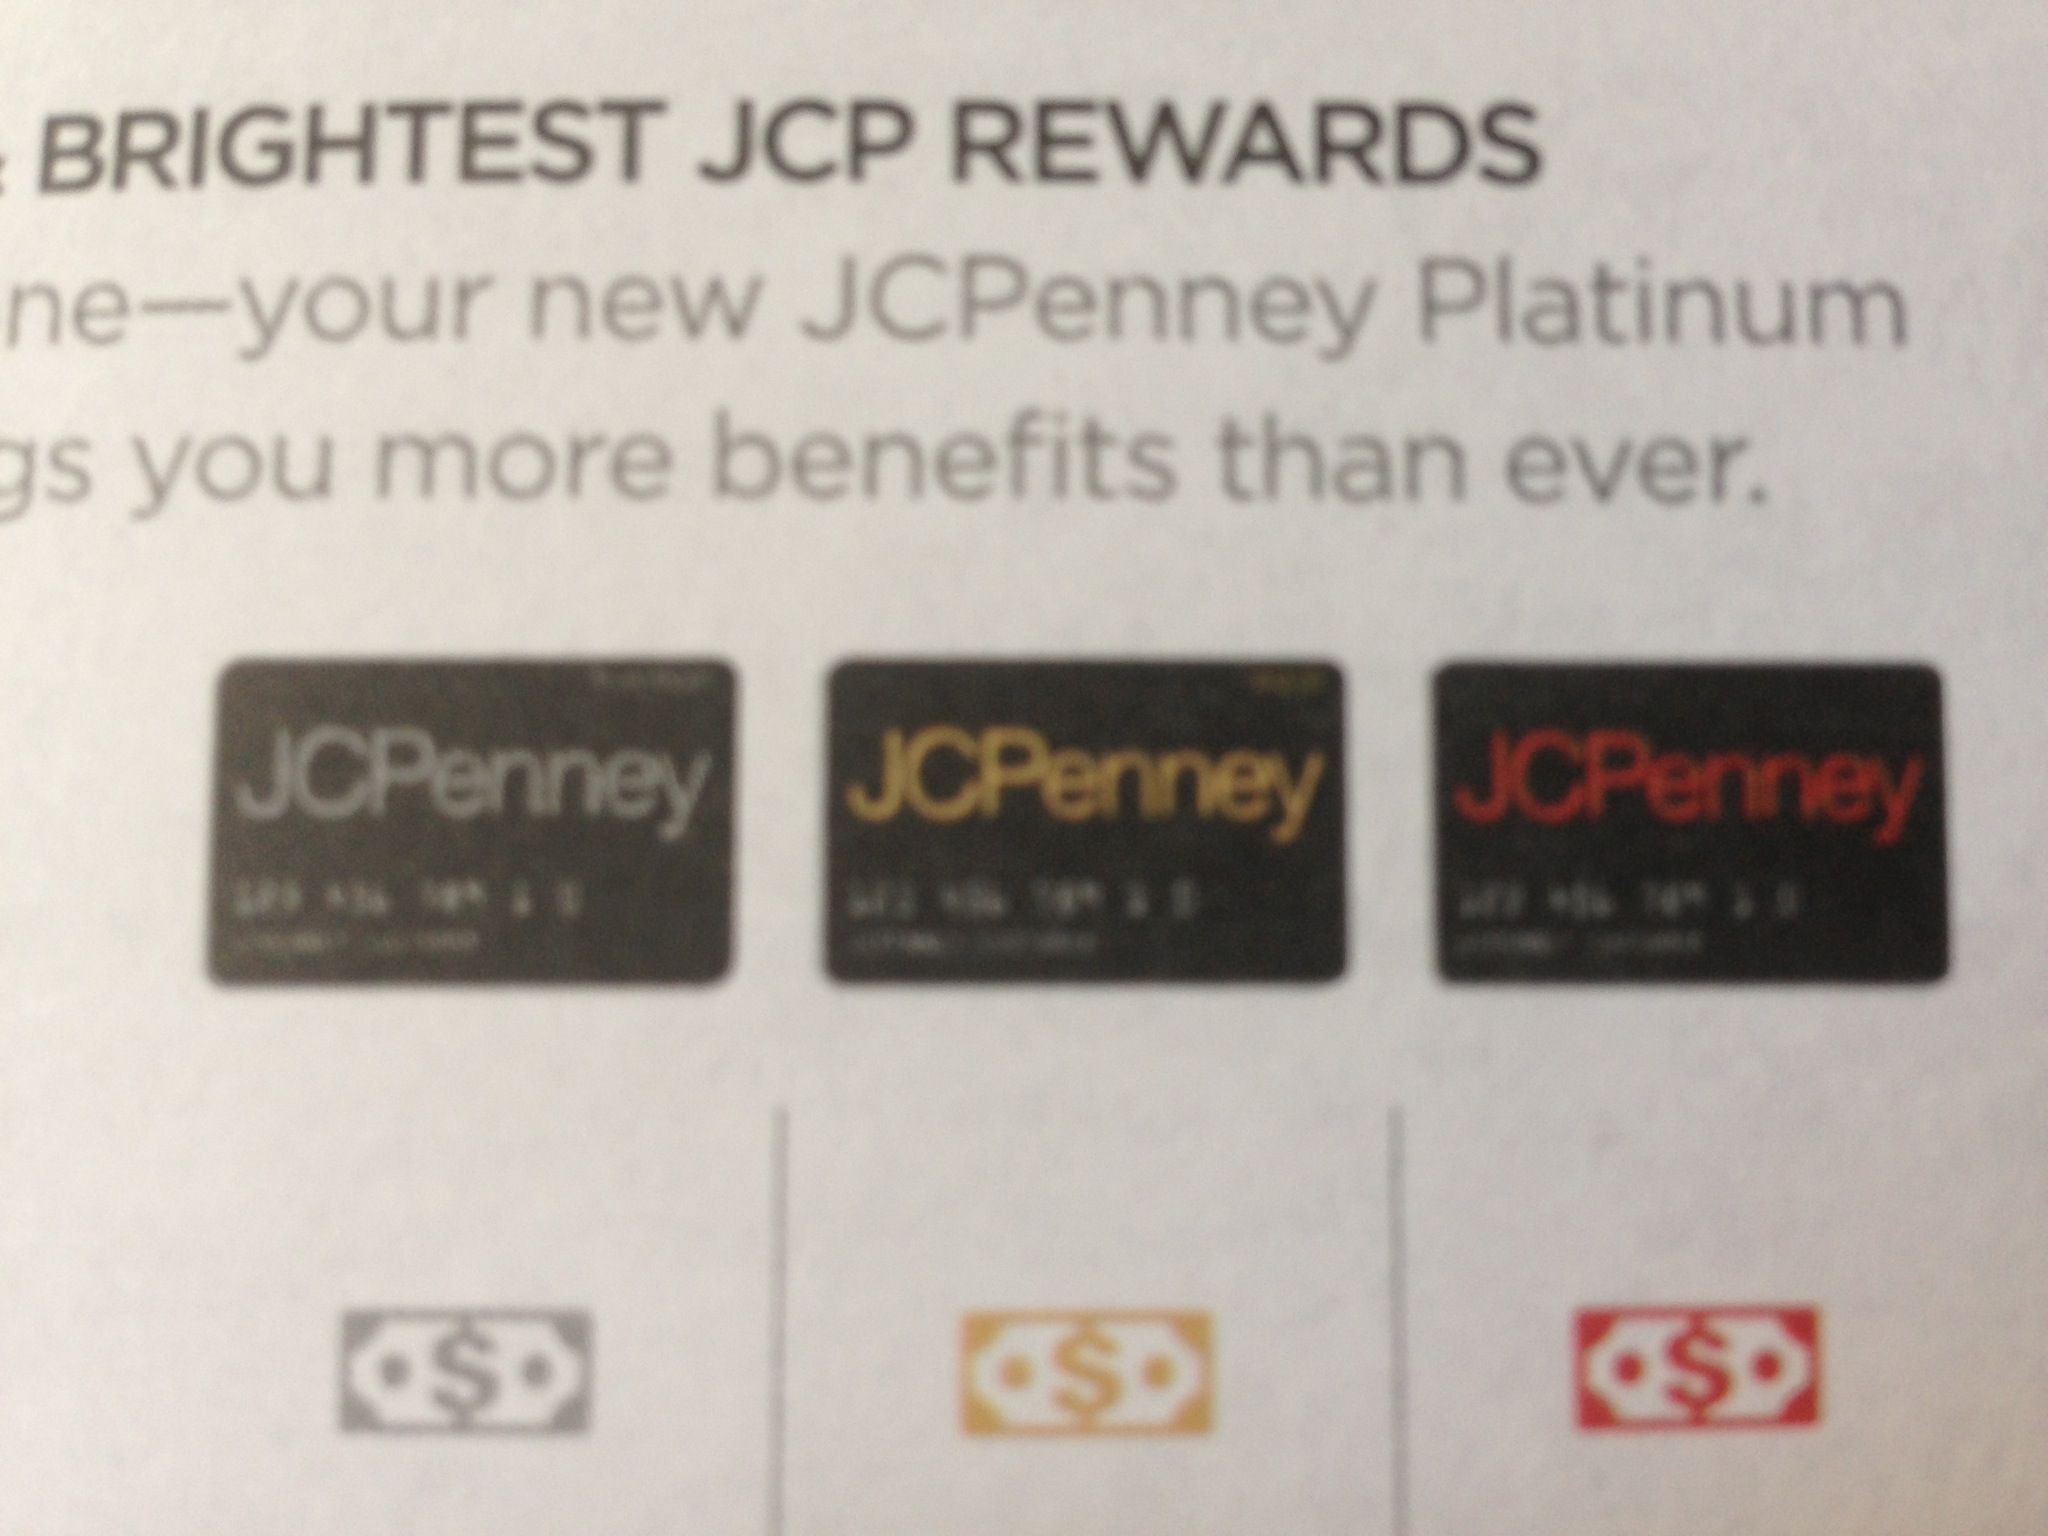 jcp rolling out new cards myfico forums 2443595 - Jcpenney Rewards Credit Card